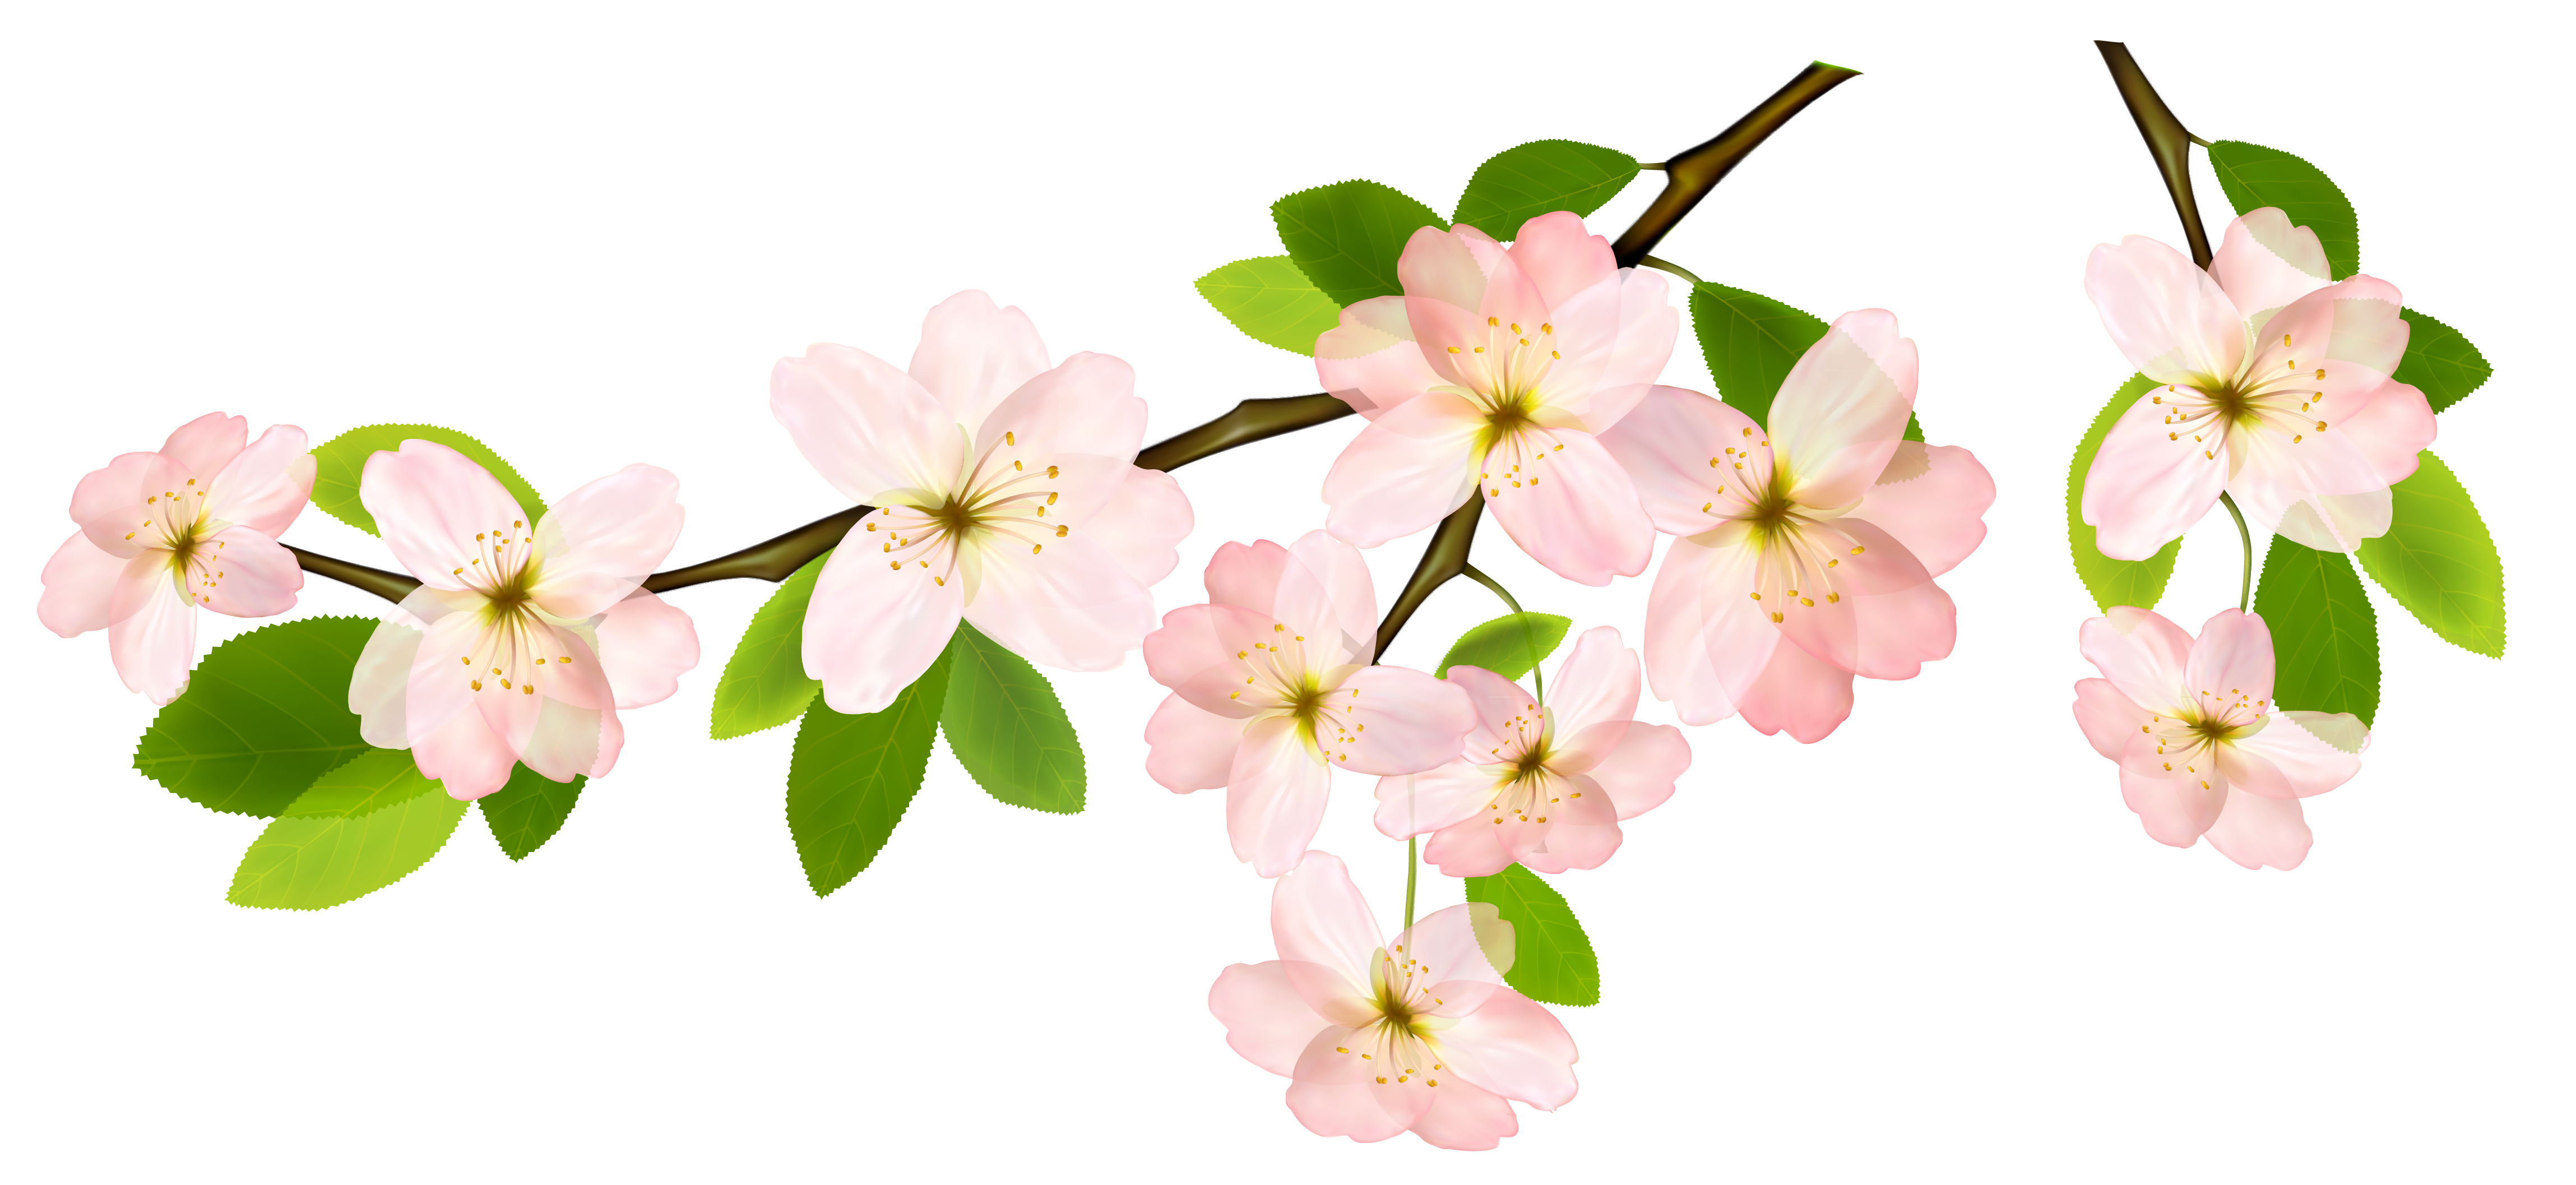 Spring png. Branch clipart picture gallery